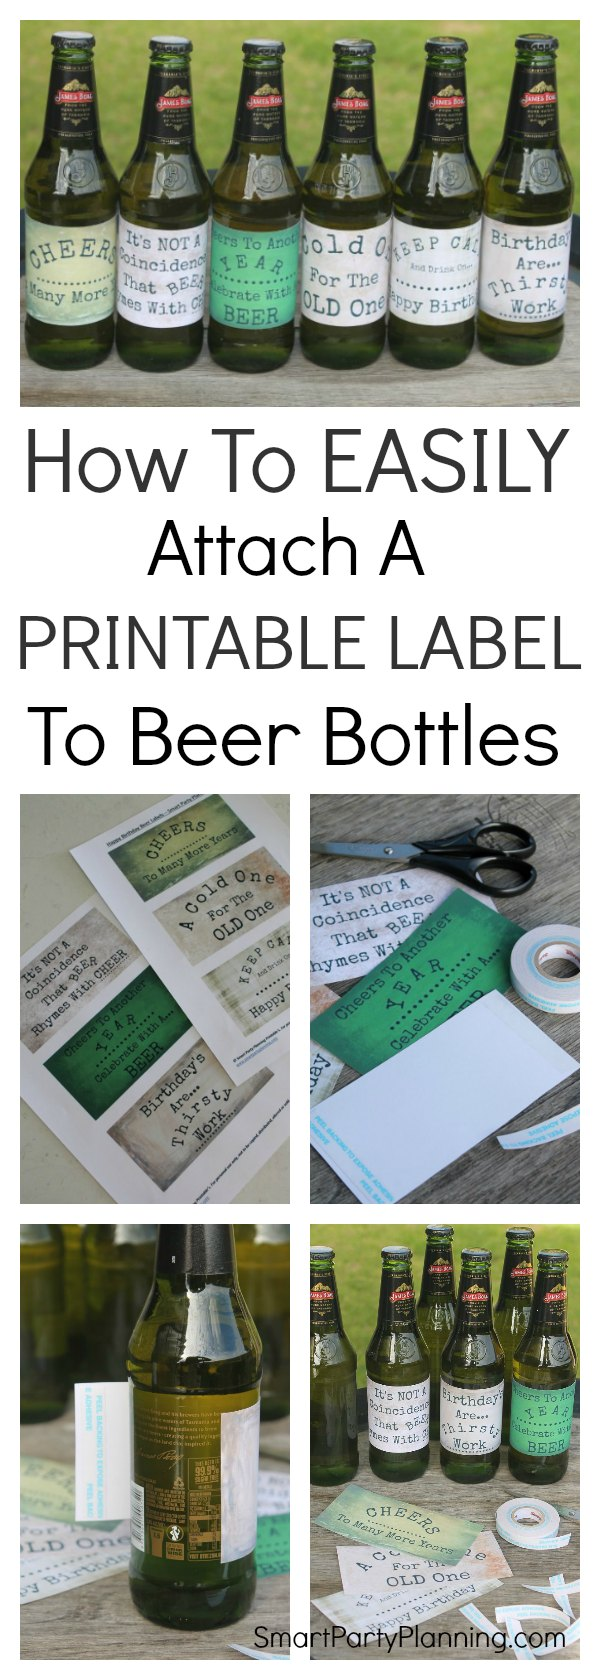 It's all very well having your beer printable's, but do you know how to attach a printable label to beer bottles? It's super easy to do, and once you know how it will soon become your favorite gift idea for the guys.  It's quick, it's cheap and the guys always love it.  It's a total win win gift.  So grab your beer bottle and your printable and let's get started.